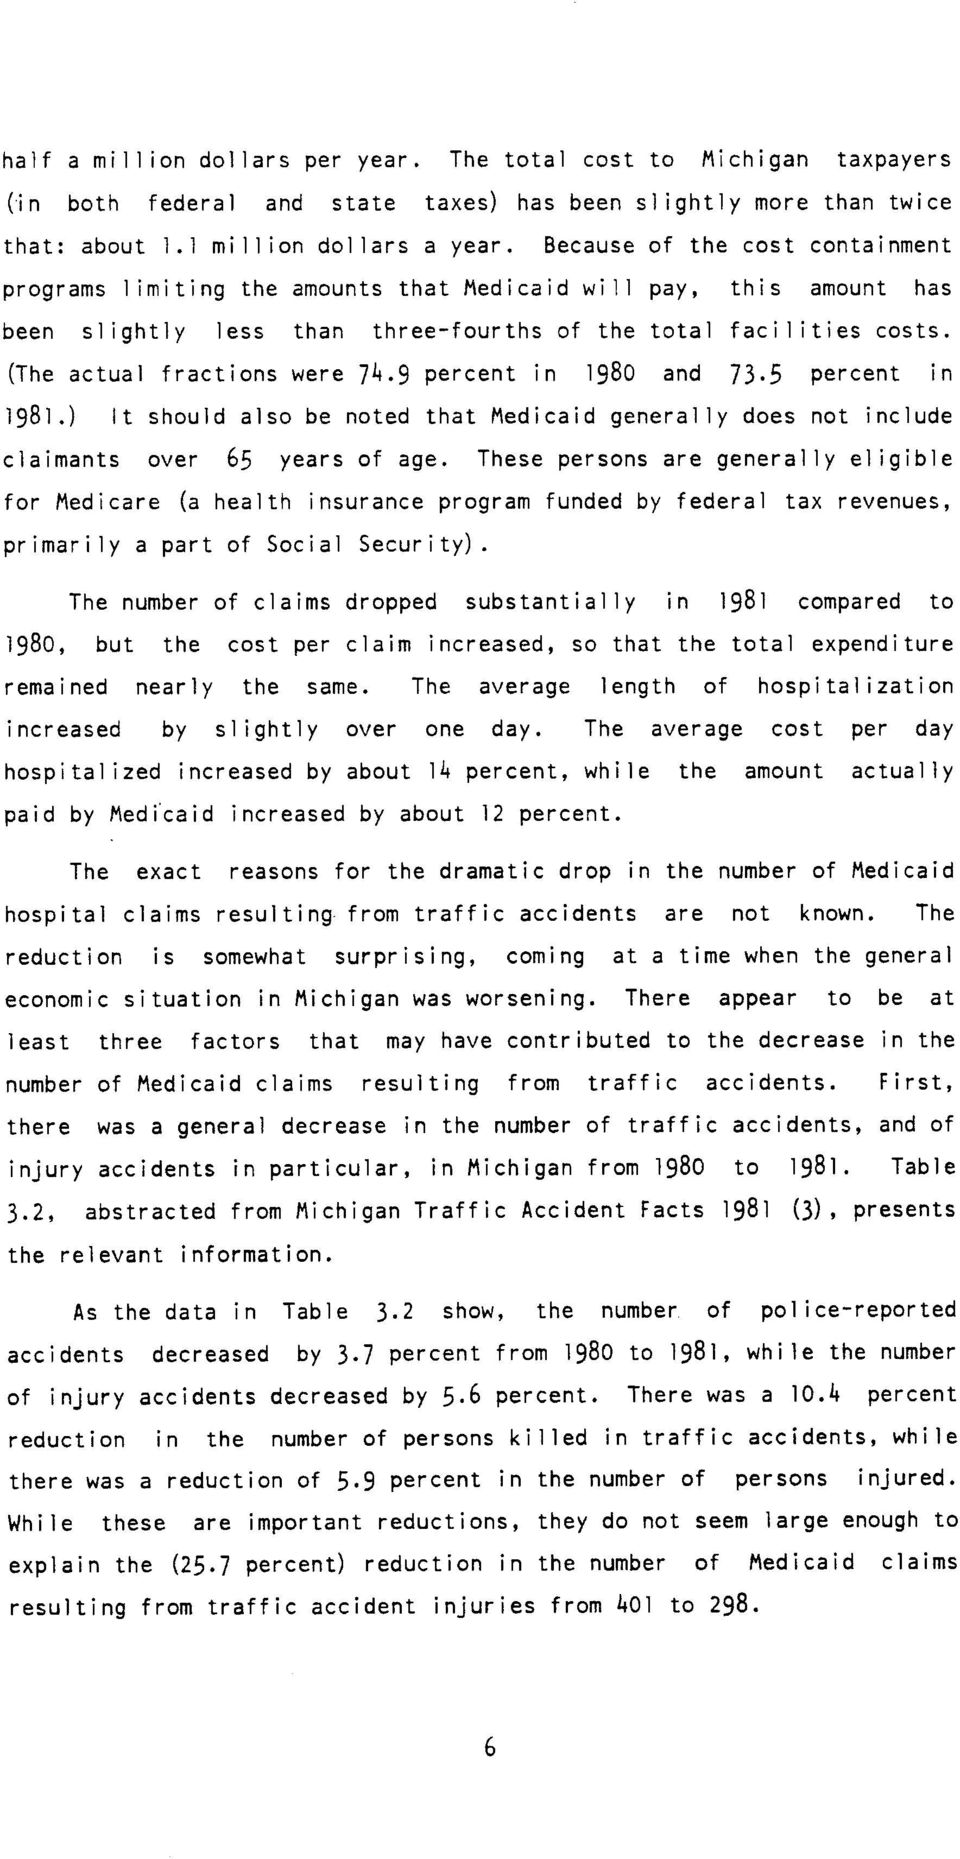 (The actual fractions were 74.9 percent in 198 and 73.5 percent in 1981.) It should also be noted that Medicaid general ly does not include claimants over 65 years of age.